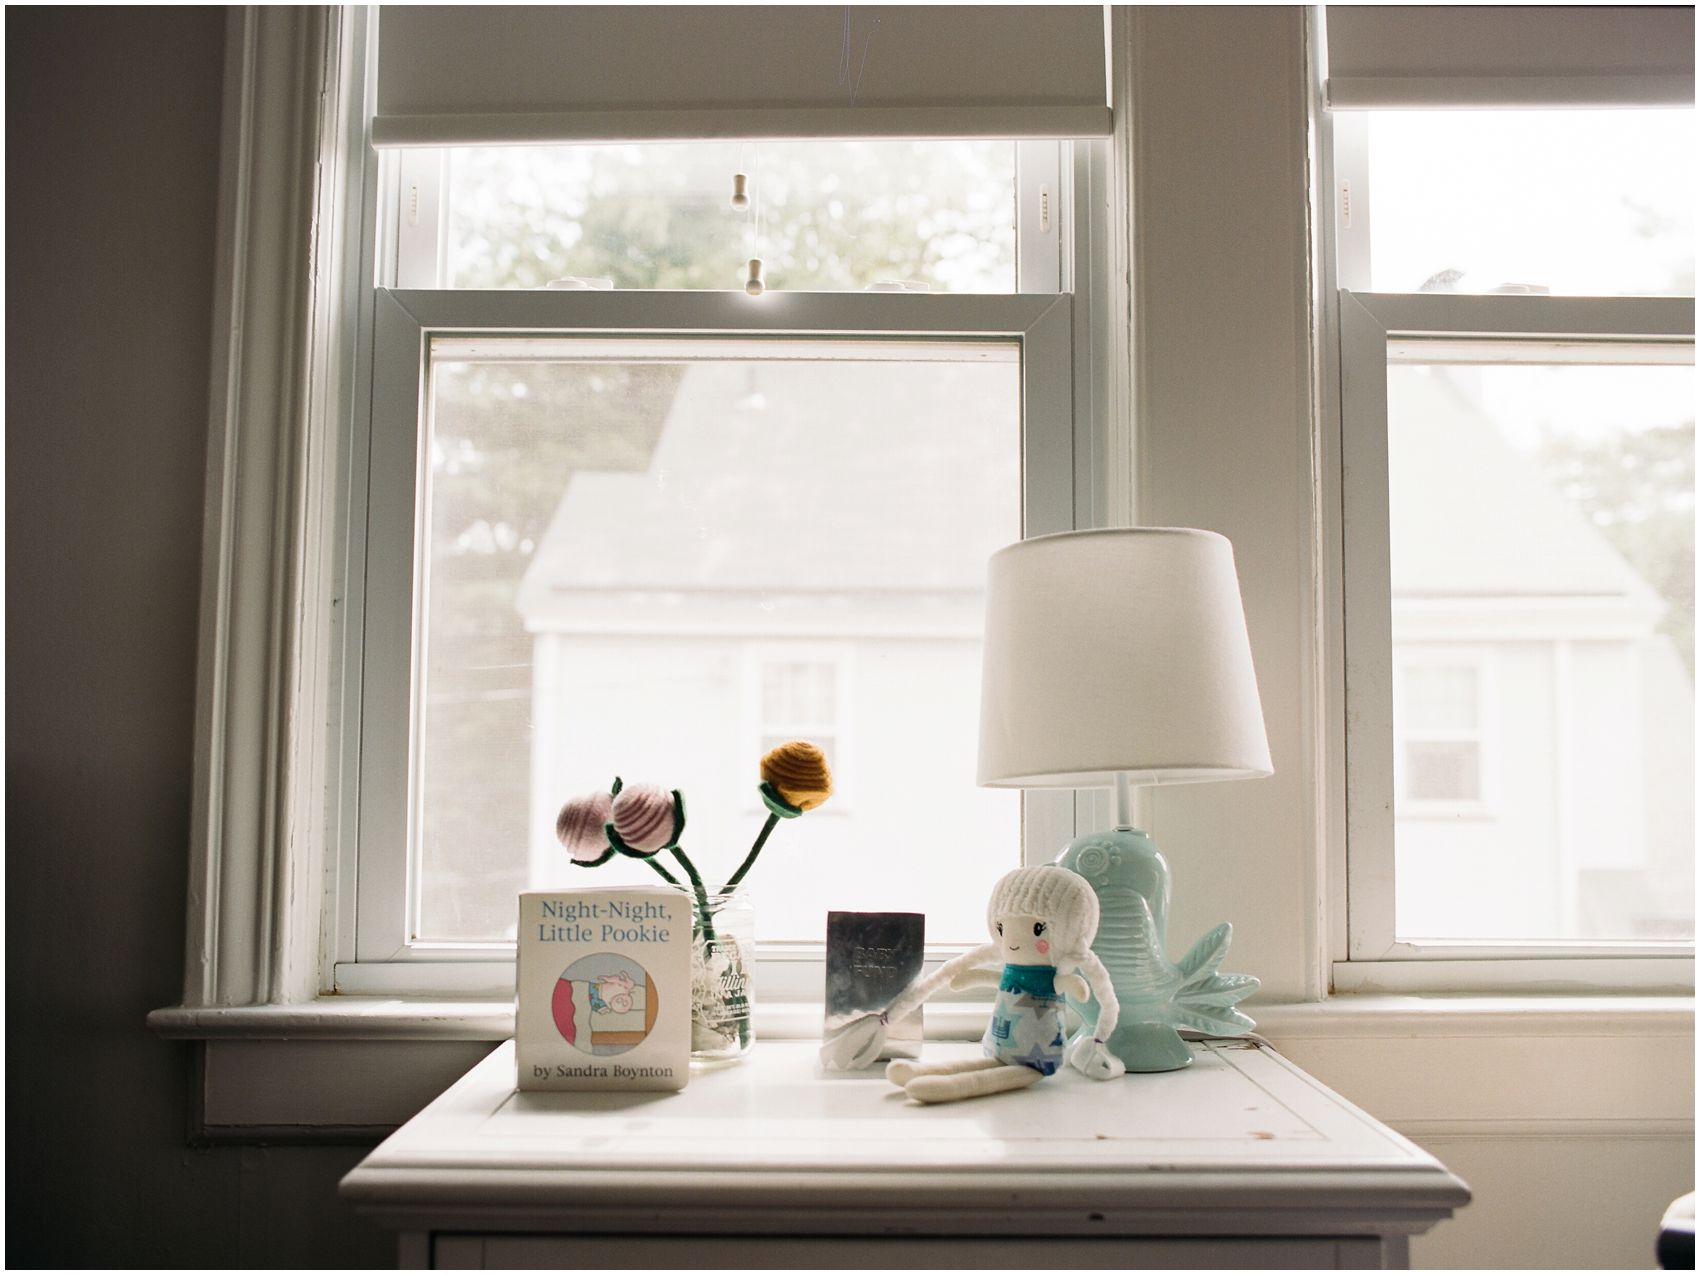 Detailed portrait of a windowsill of a child bedroom with toys and books in Essex County NJ home